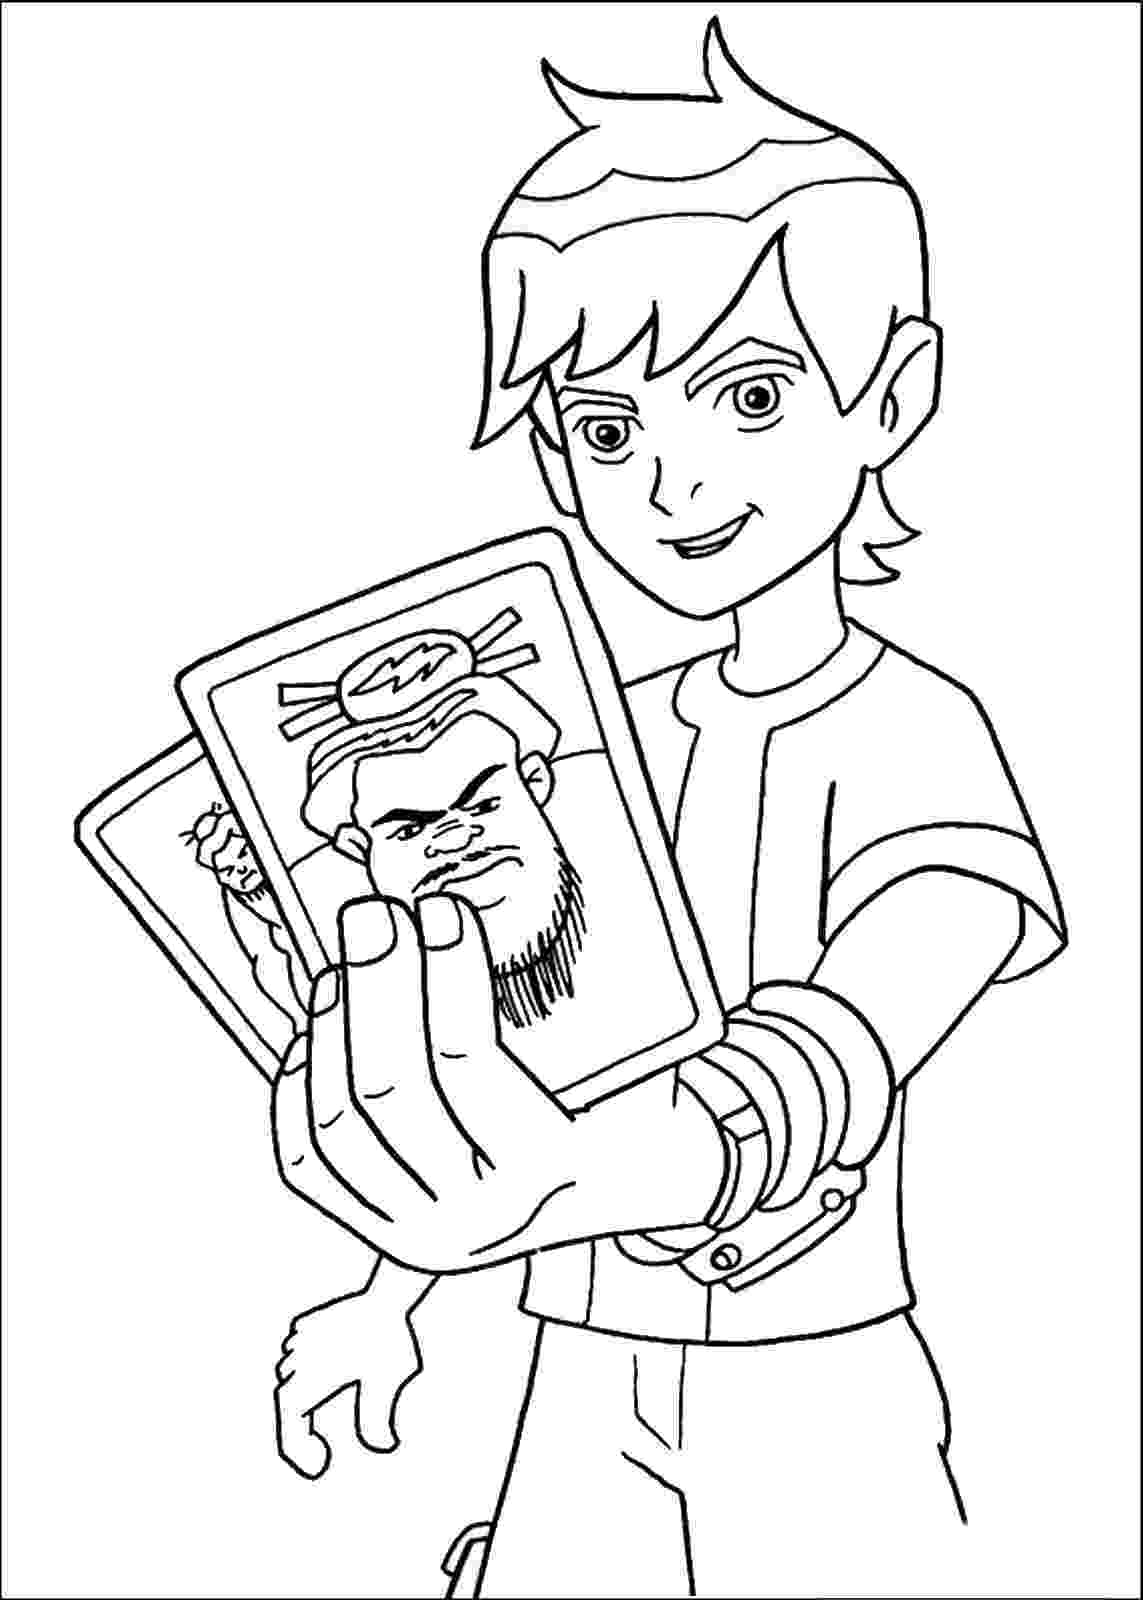 ben 10 coloring pages printable ben ten coloring pages for kids cool2bkids 10 ben coloring pages